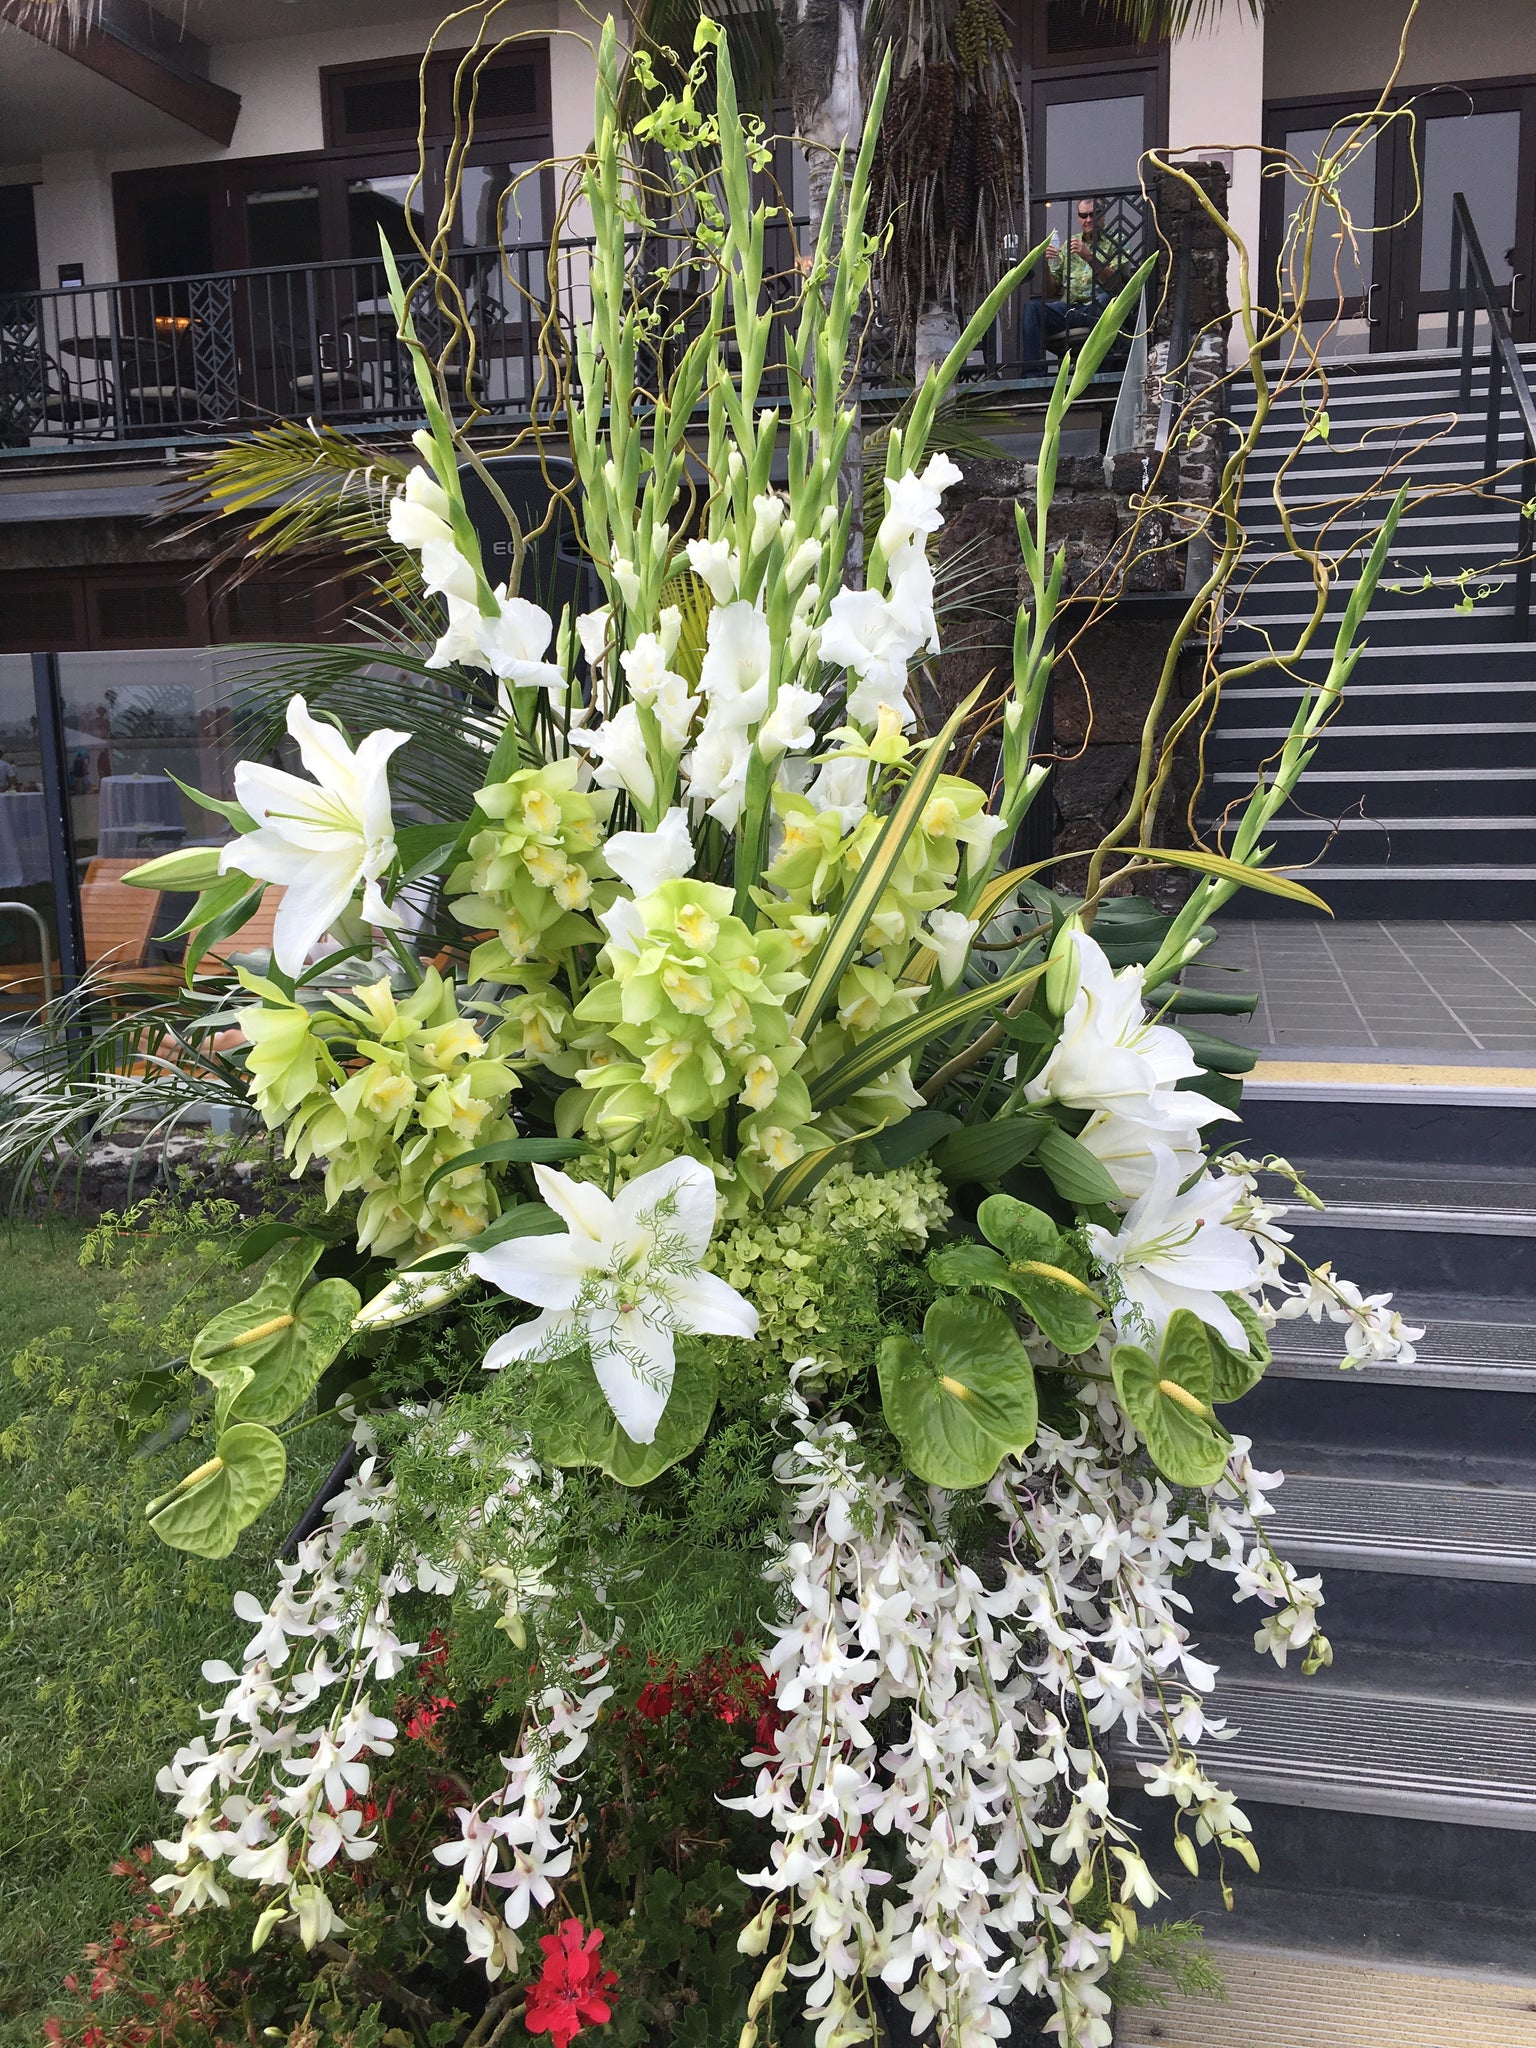 This gorgeous wedding entrance piece consists of white gladiolas high and to the back with green Cymbidium orchids and white Casablanca lilies towards the middle, green Anthurium towards the bottom and lovely white orchids cascading towards the bottom, a beautiful statement piece.